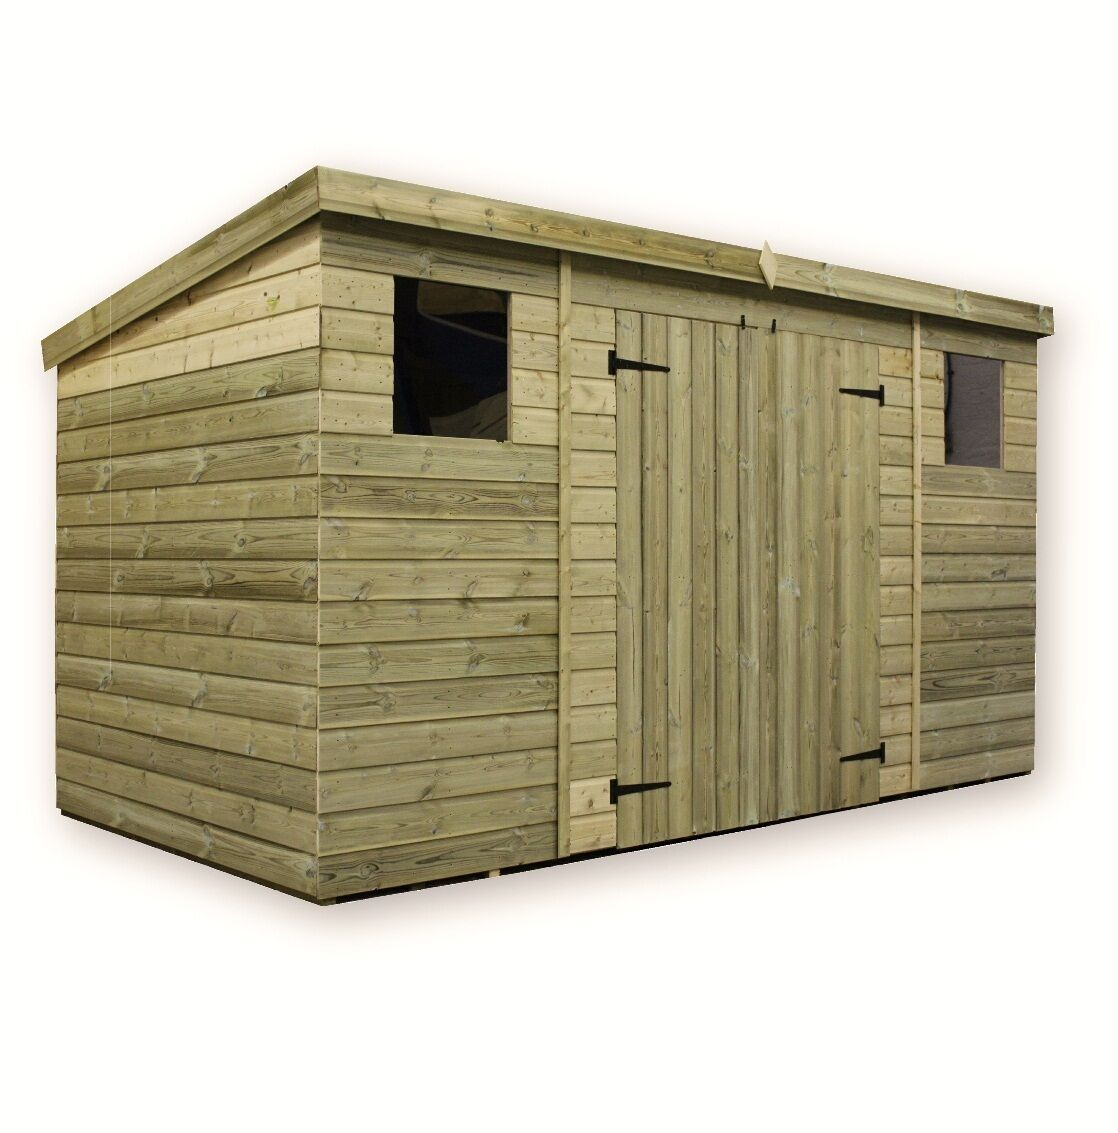 garden wooden frame a storage smartside ramp for with sale category sheds shed structures horizon